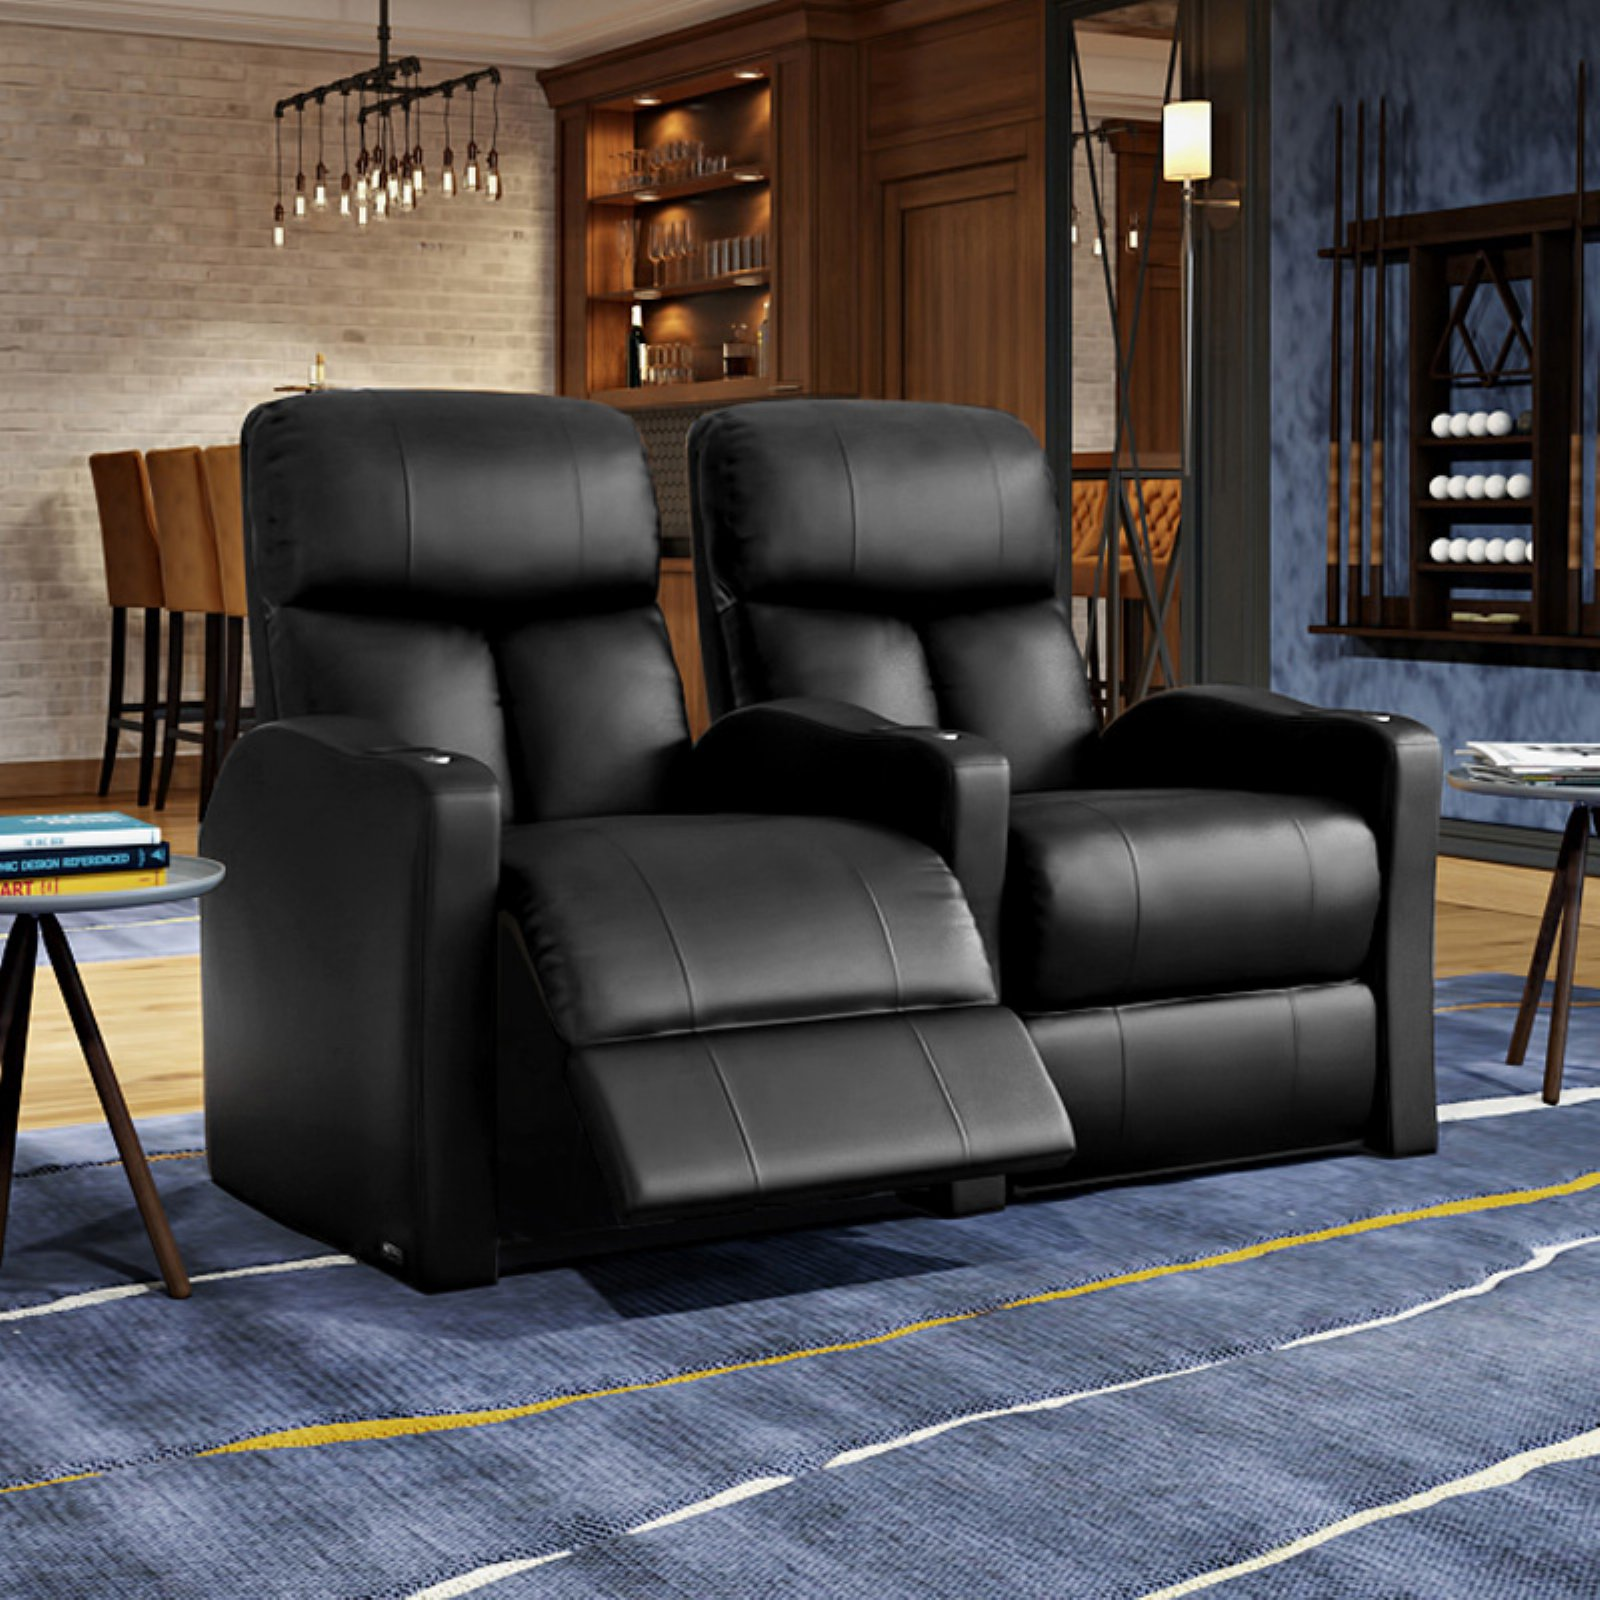 Octane Bolt XS400 2 Seater Power Recline Home Theater Seating